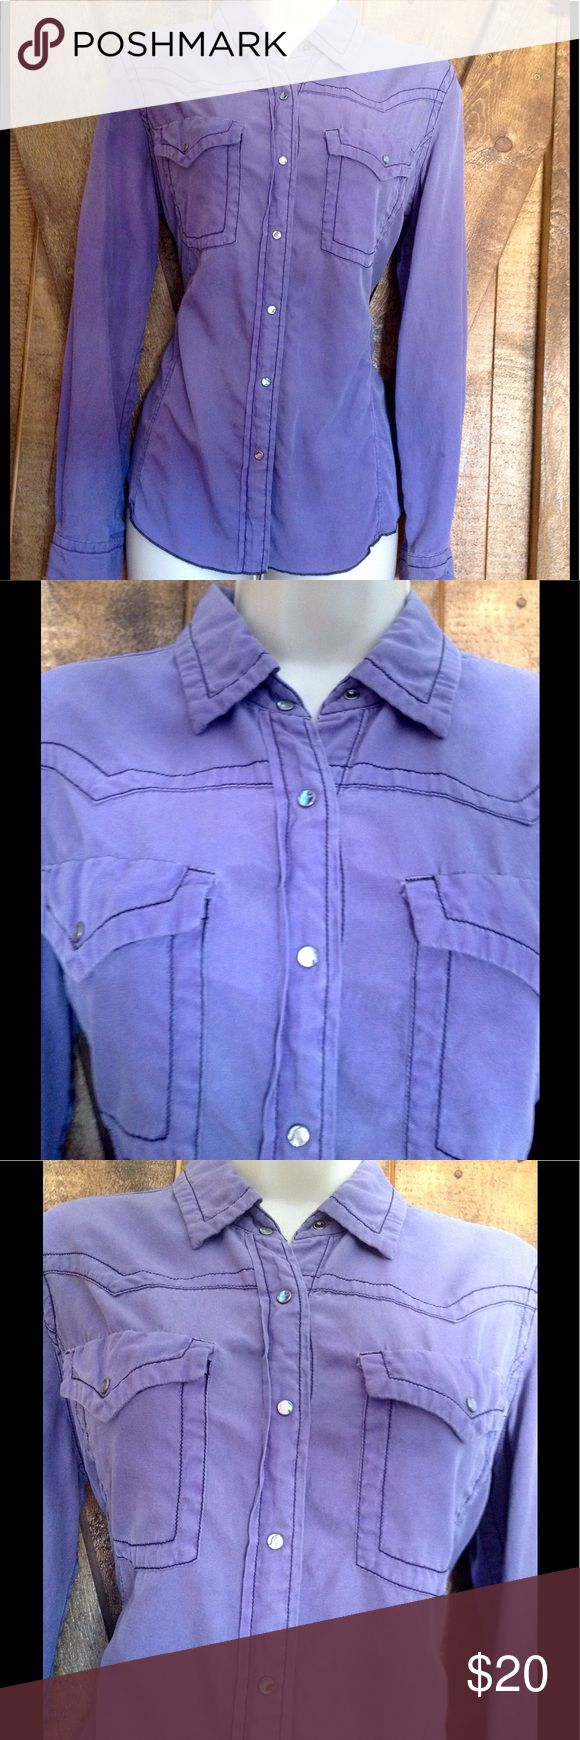 """💜LAVENDER WASHABLE SILK WESTERN STYLE BLOUSE💜💜 💜Feminine lavender color on soft silk cotton fabric with Ryan Michael flattering tailoring, real mother of pear snaps, black top stitching to highlight details. Measures laying flat 19"""" pit to pit and 25"""" mid shoulder to bottom hem. MACHINE WASHABLE AND DRYABLE  🤗 Can you believe that? 💜💜💜 Ryan Michael Tops"""